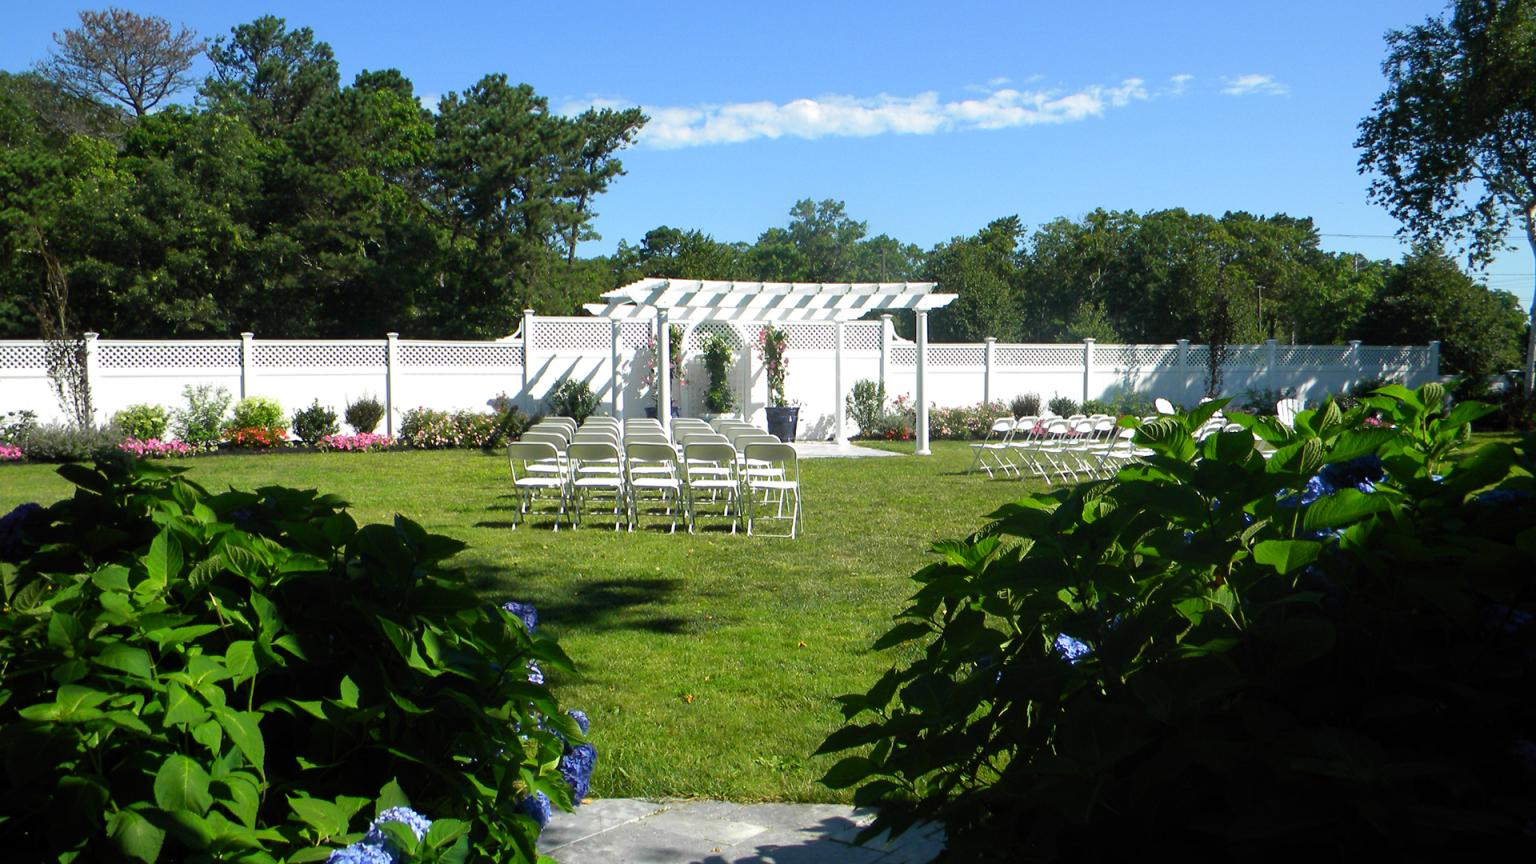 Cape Codder Outdoor Garden Terrace for functions and weddings